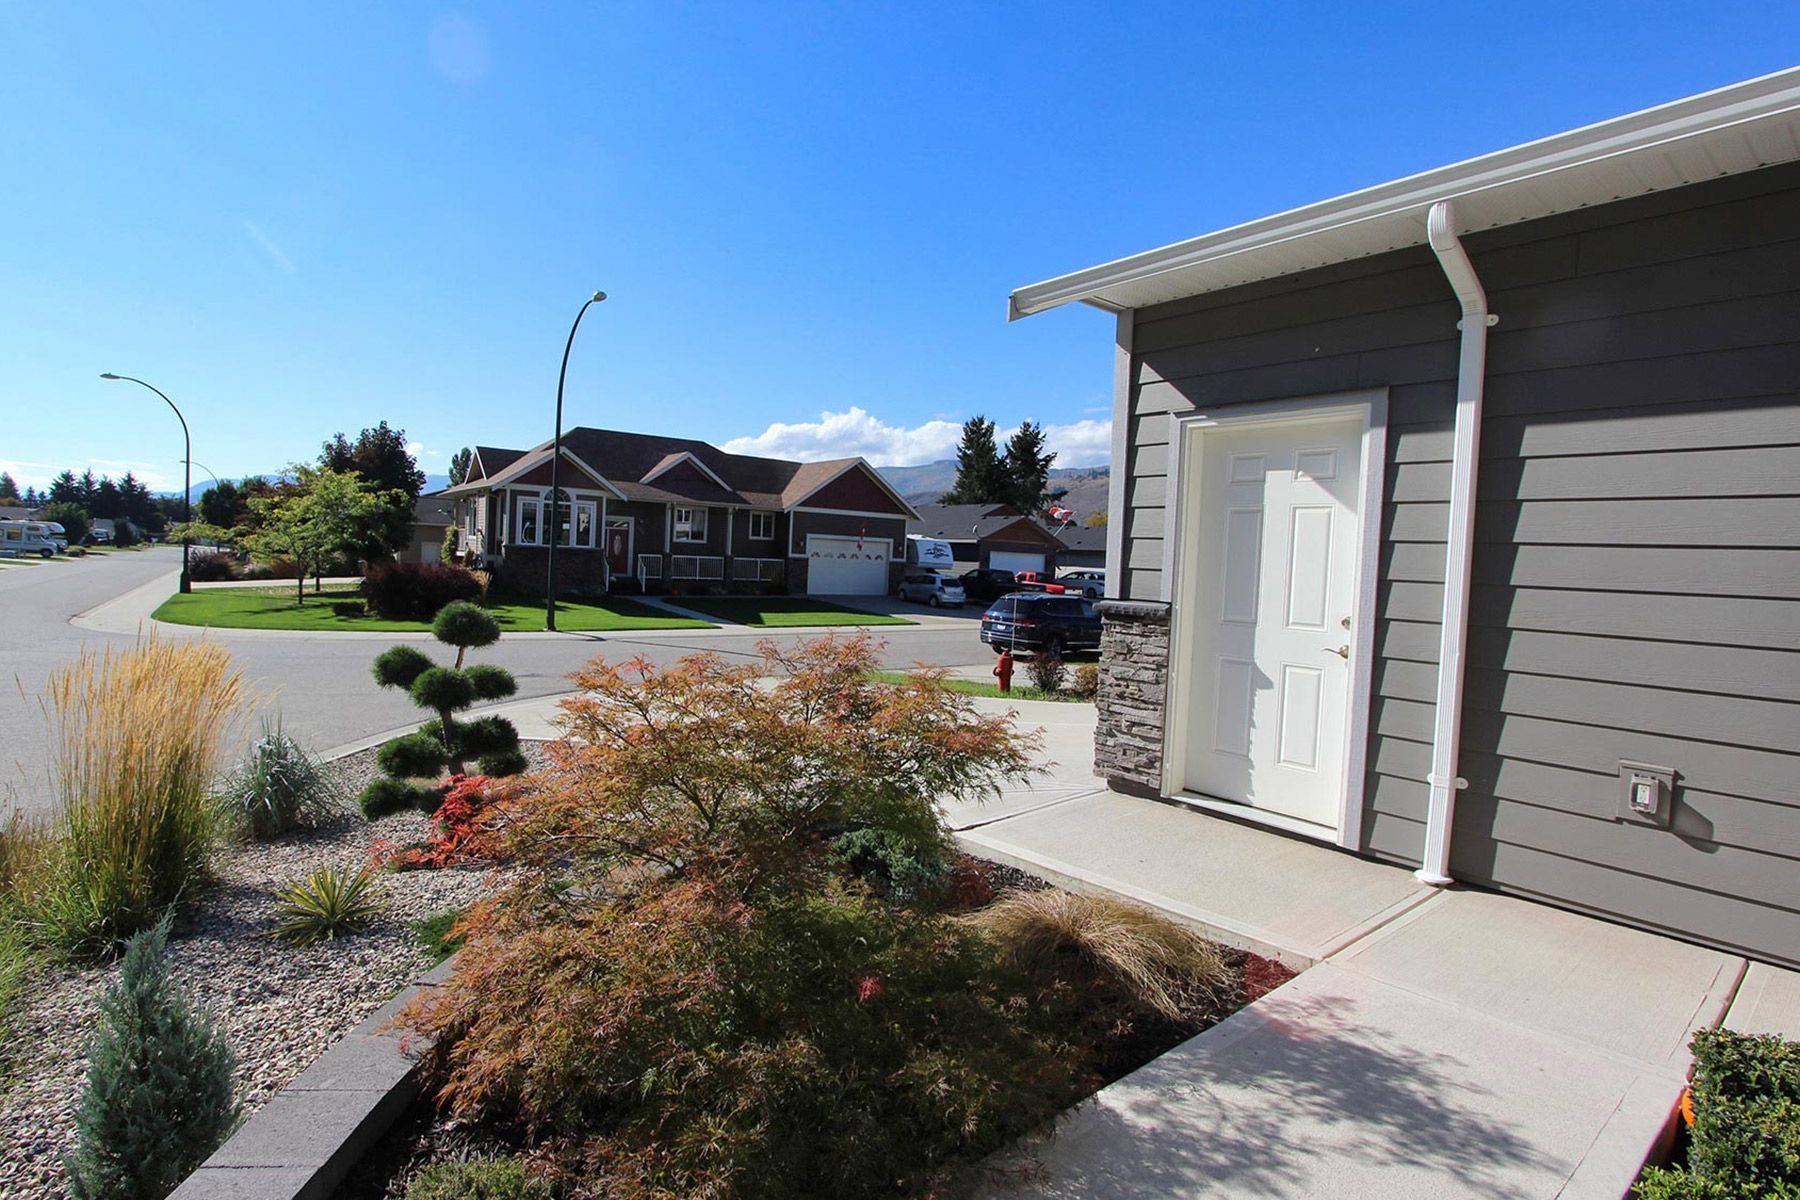 Photo 7: Photos: 199 Ash Drive in Chase: House for sale : MLS®# 10223046